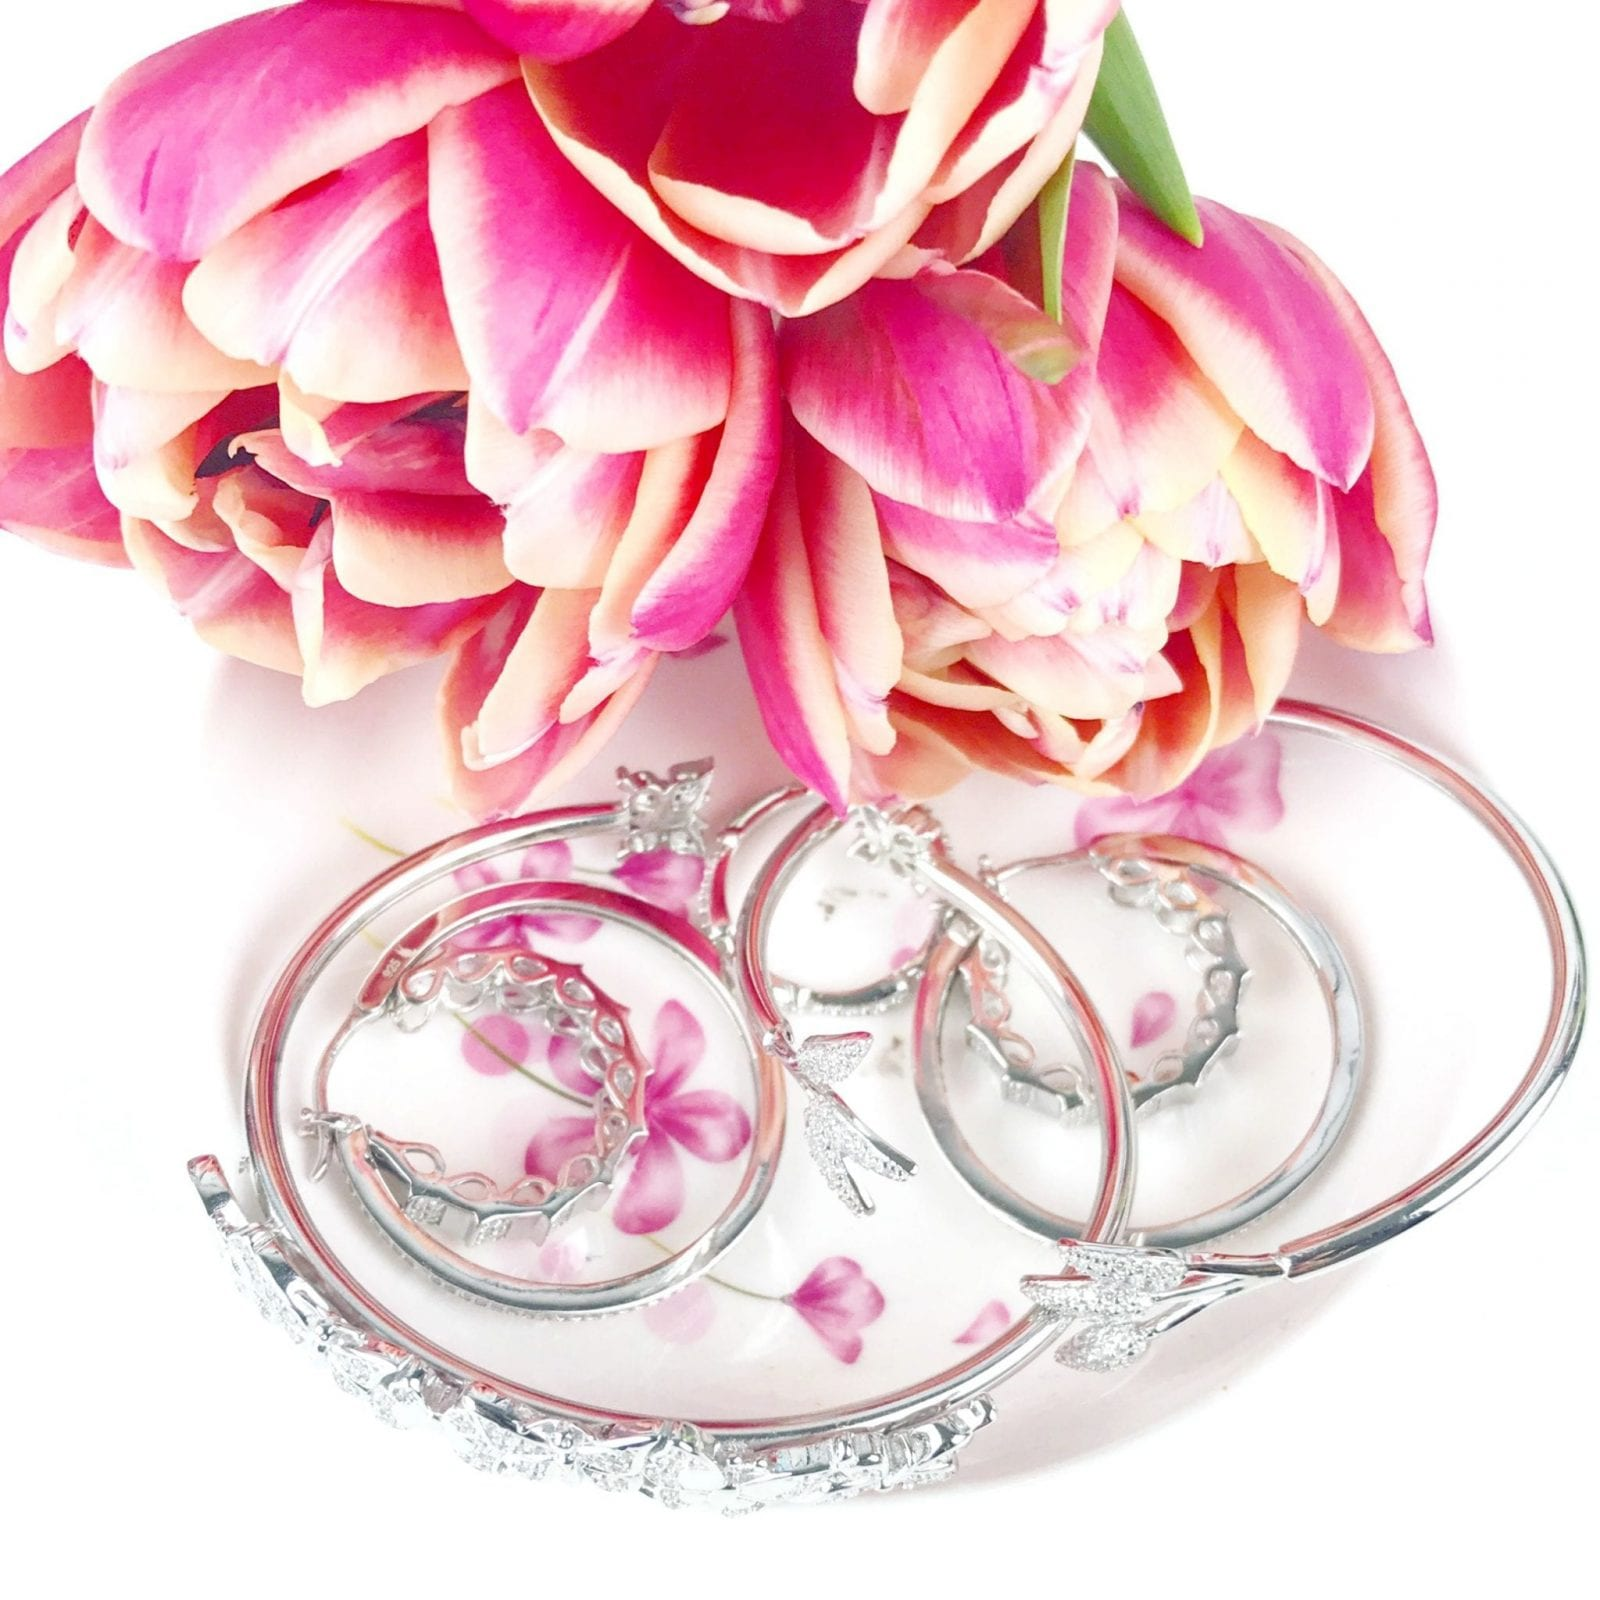 This is a close up of jewelry on a gorgeous floral plate.